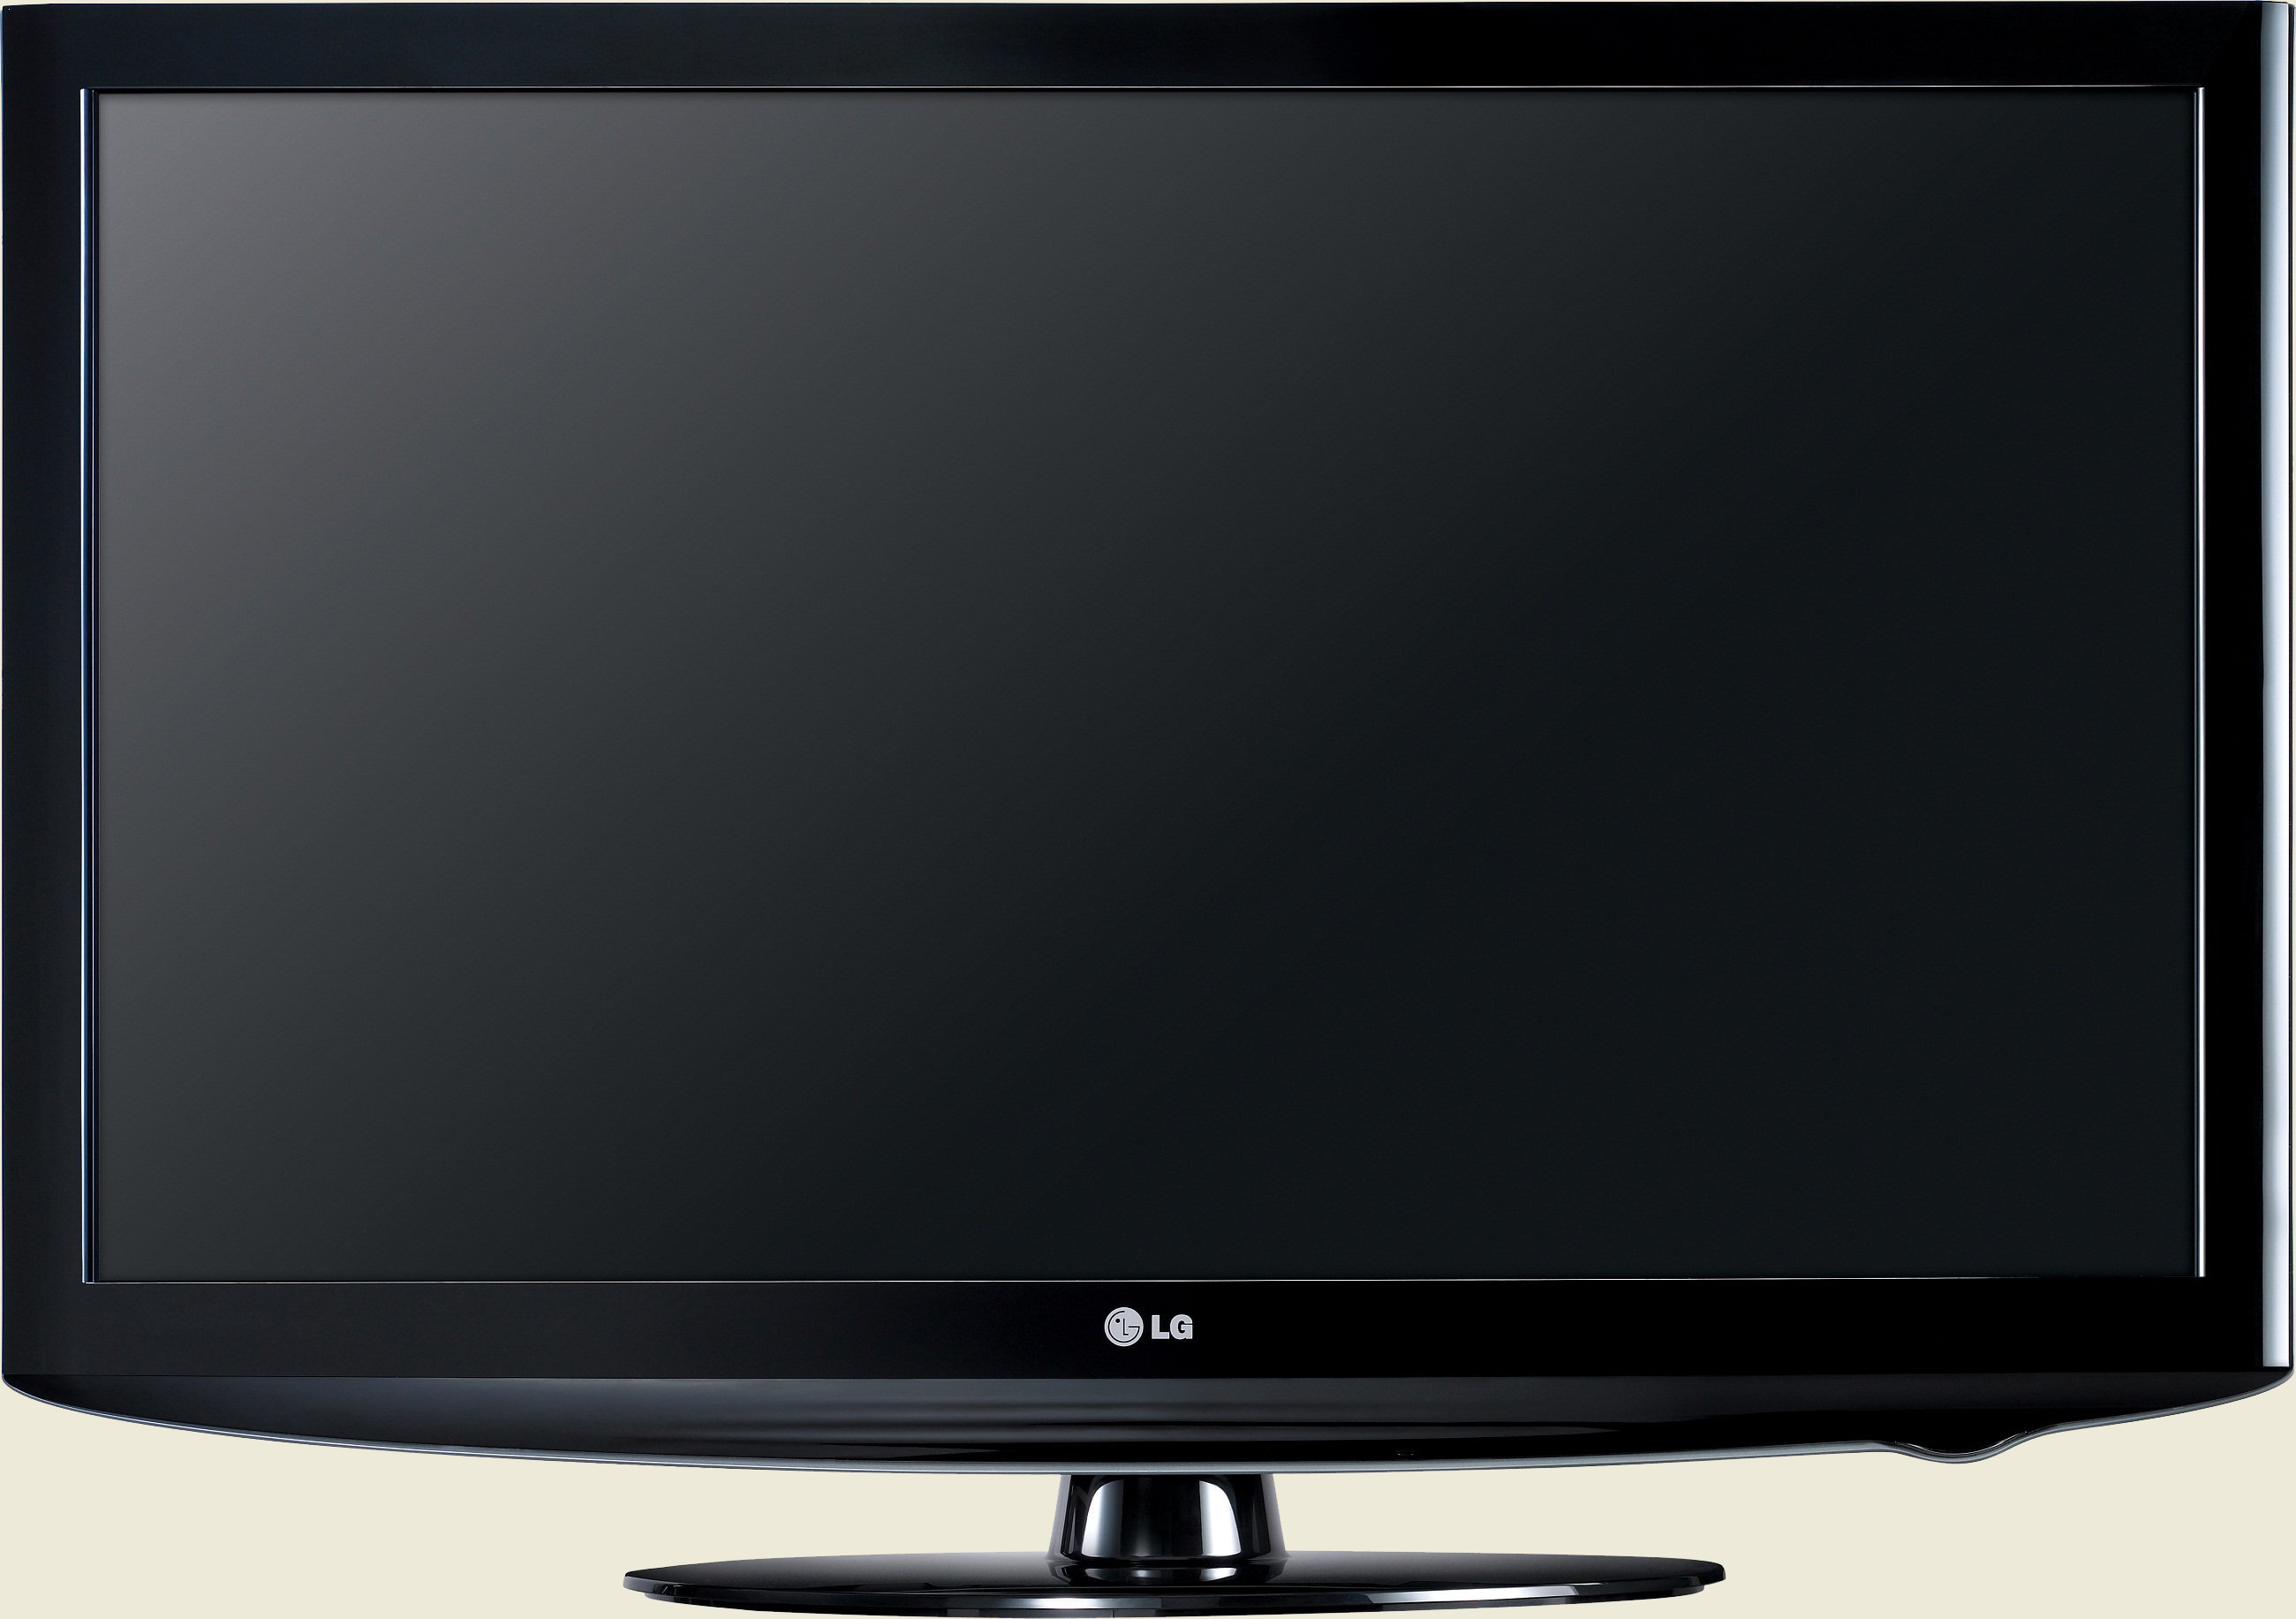 Bedroom Furniture Black 32 Inch Hd Lcd Television